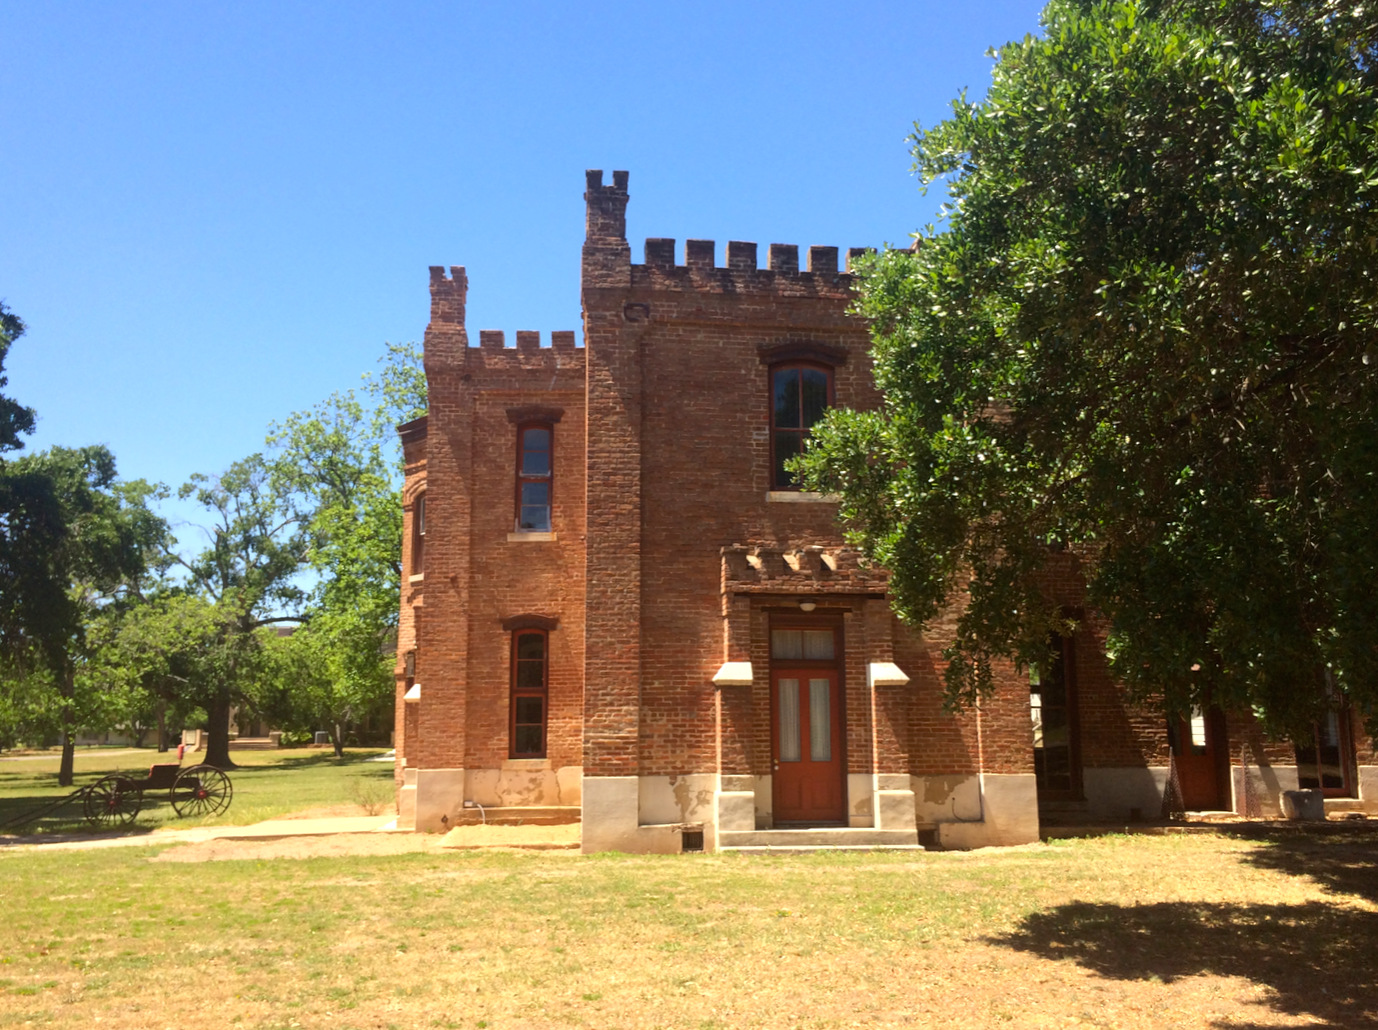 Retired Robertson County Courthouse, Calvert, Texas